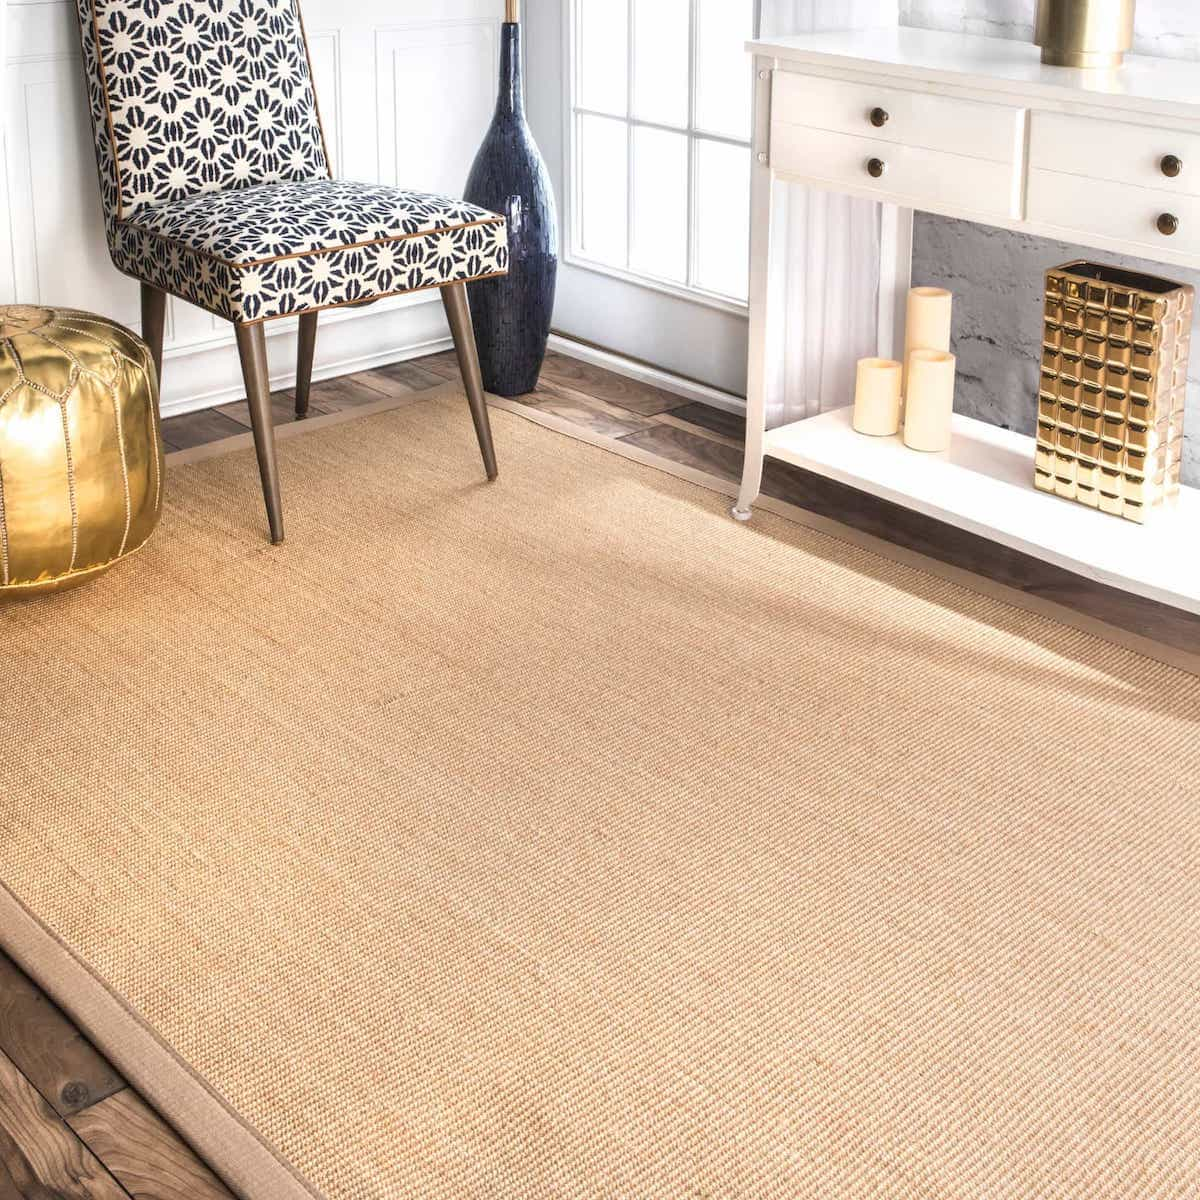 7×9 Sisal Rug For Living Room Area (Image 2 of 15)